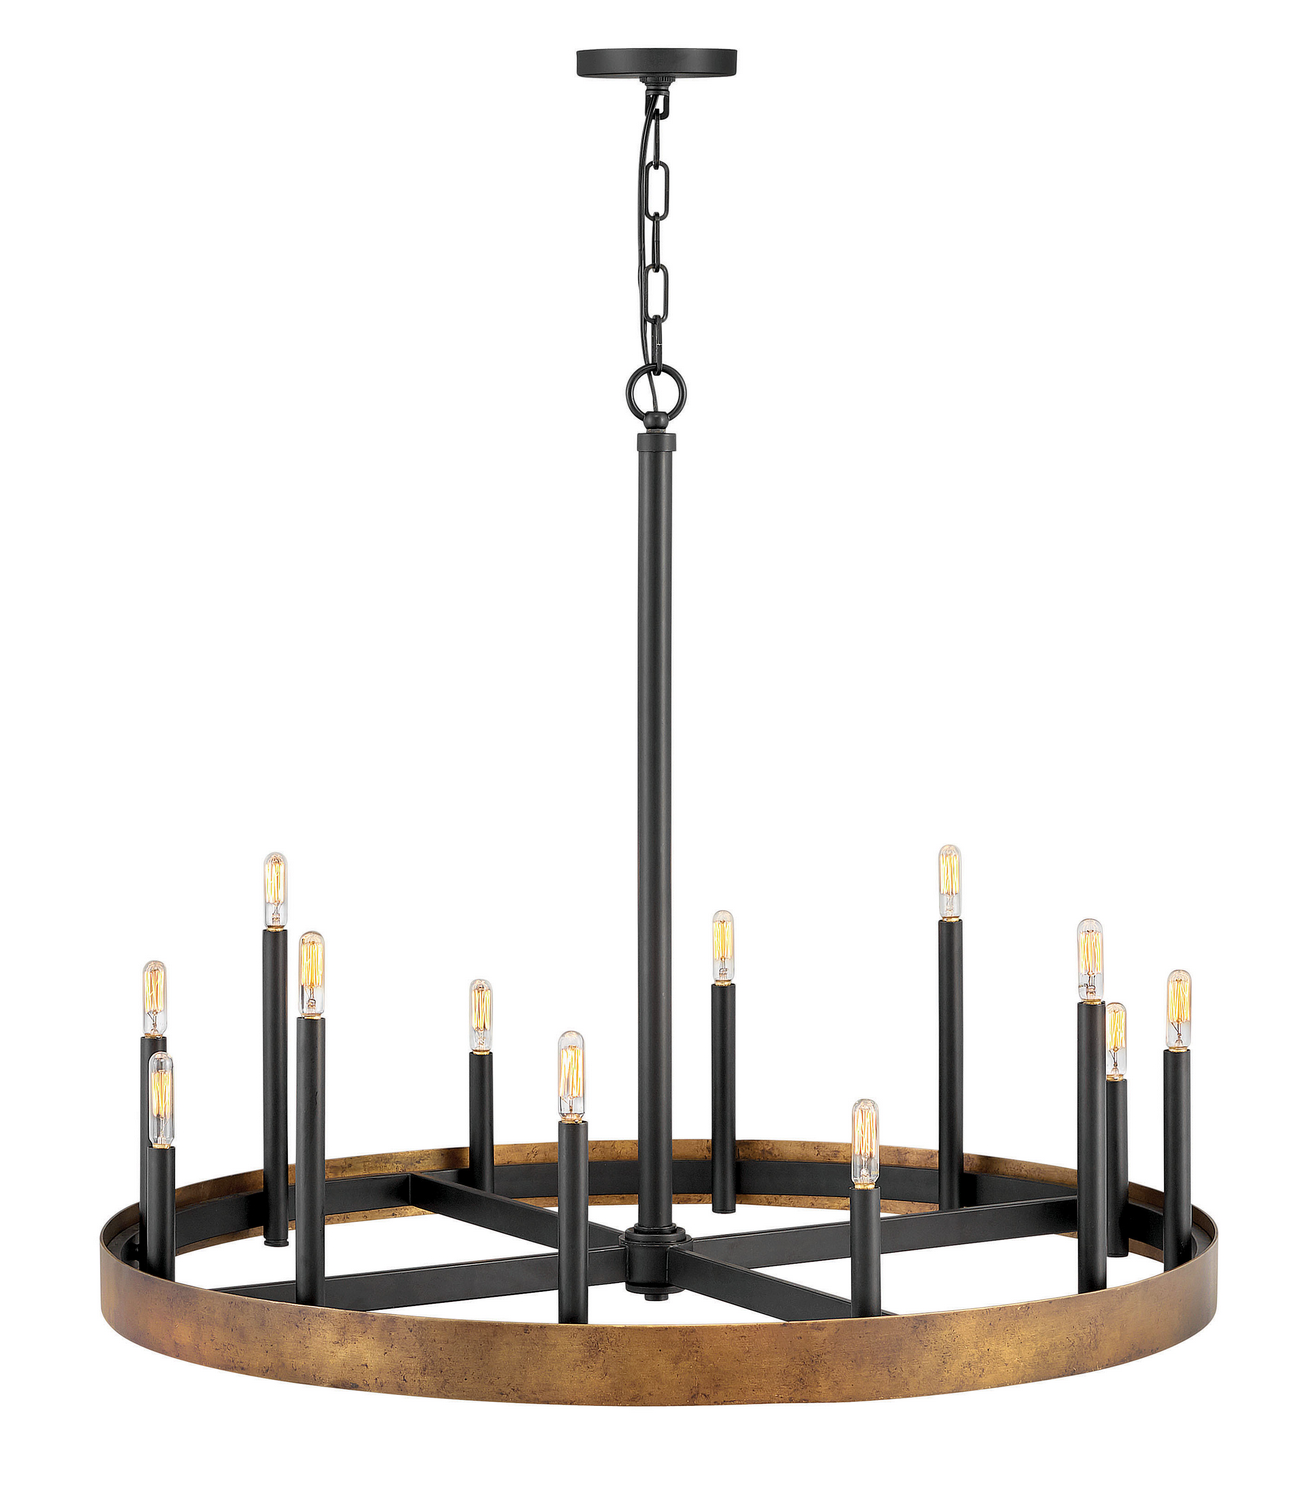 12 Light Chandelier from the Wells collection by Hinkley 3869WA